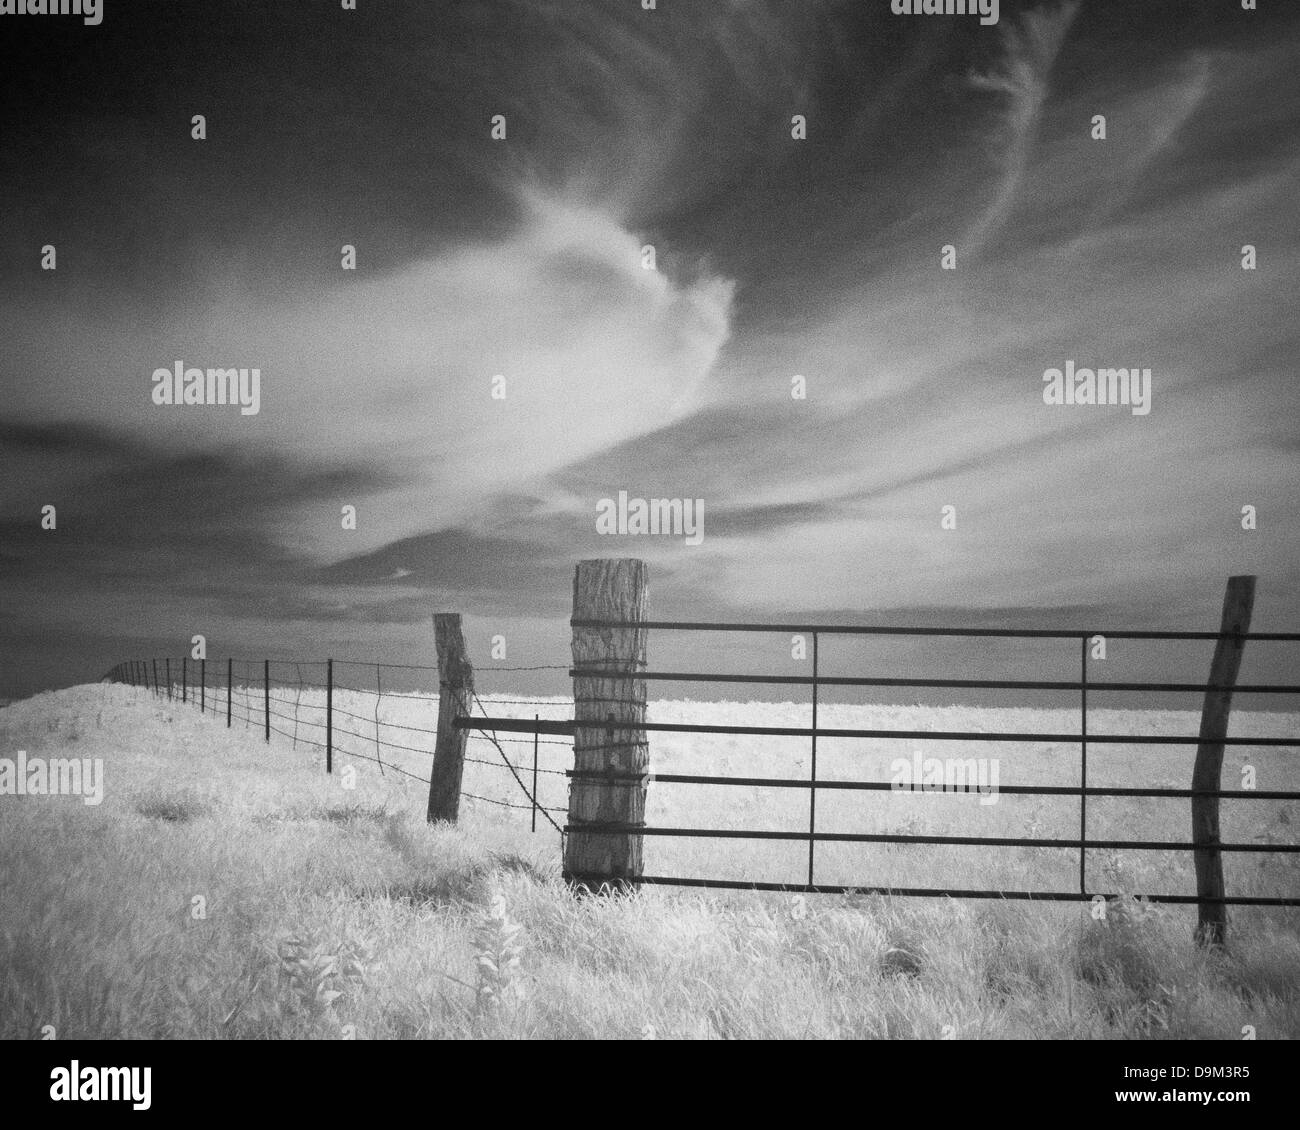 Infrared Image Fences of the Plains - Stock Image